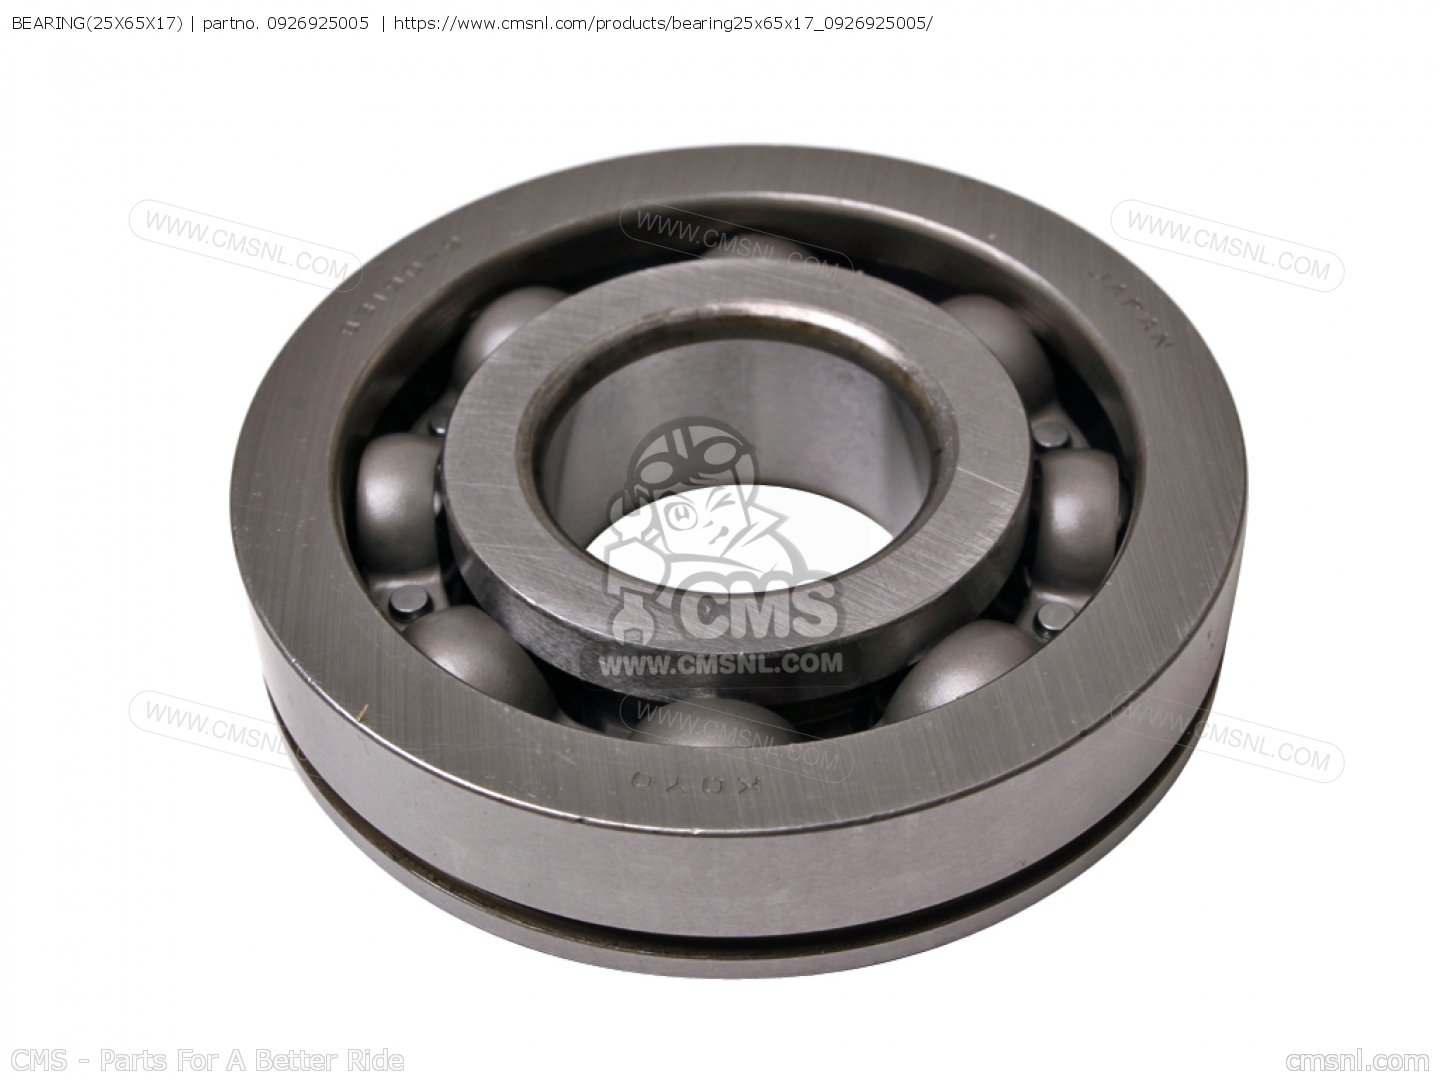 SUZUKI BEARING(25X65X17) WITH LOCATING GROVE JAPAN